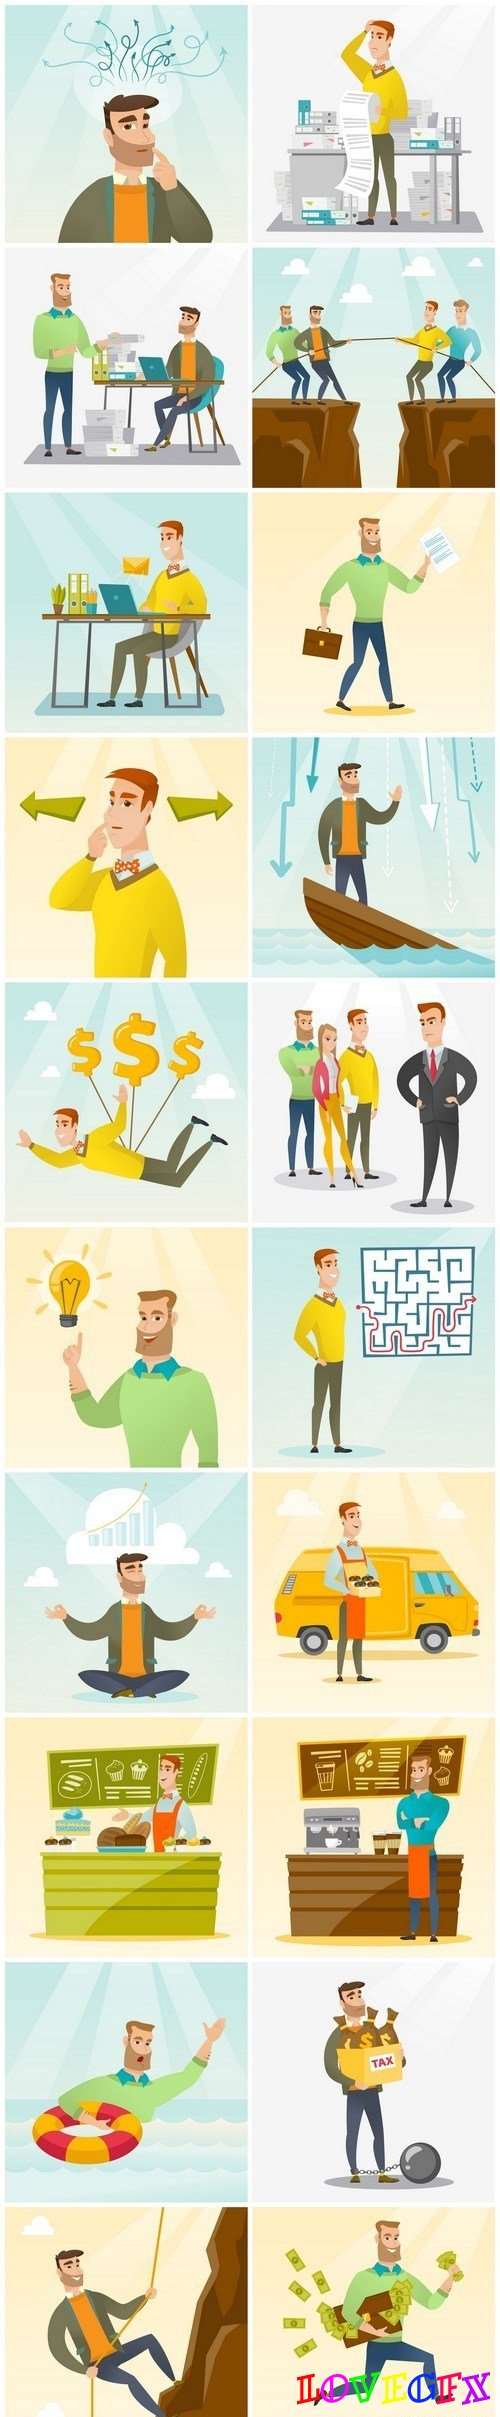 Business people concept - 20xEPS